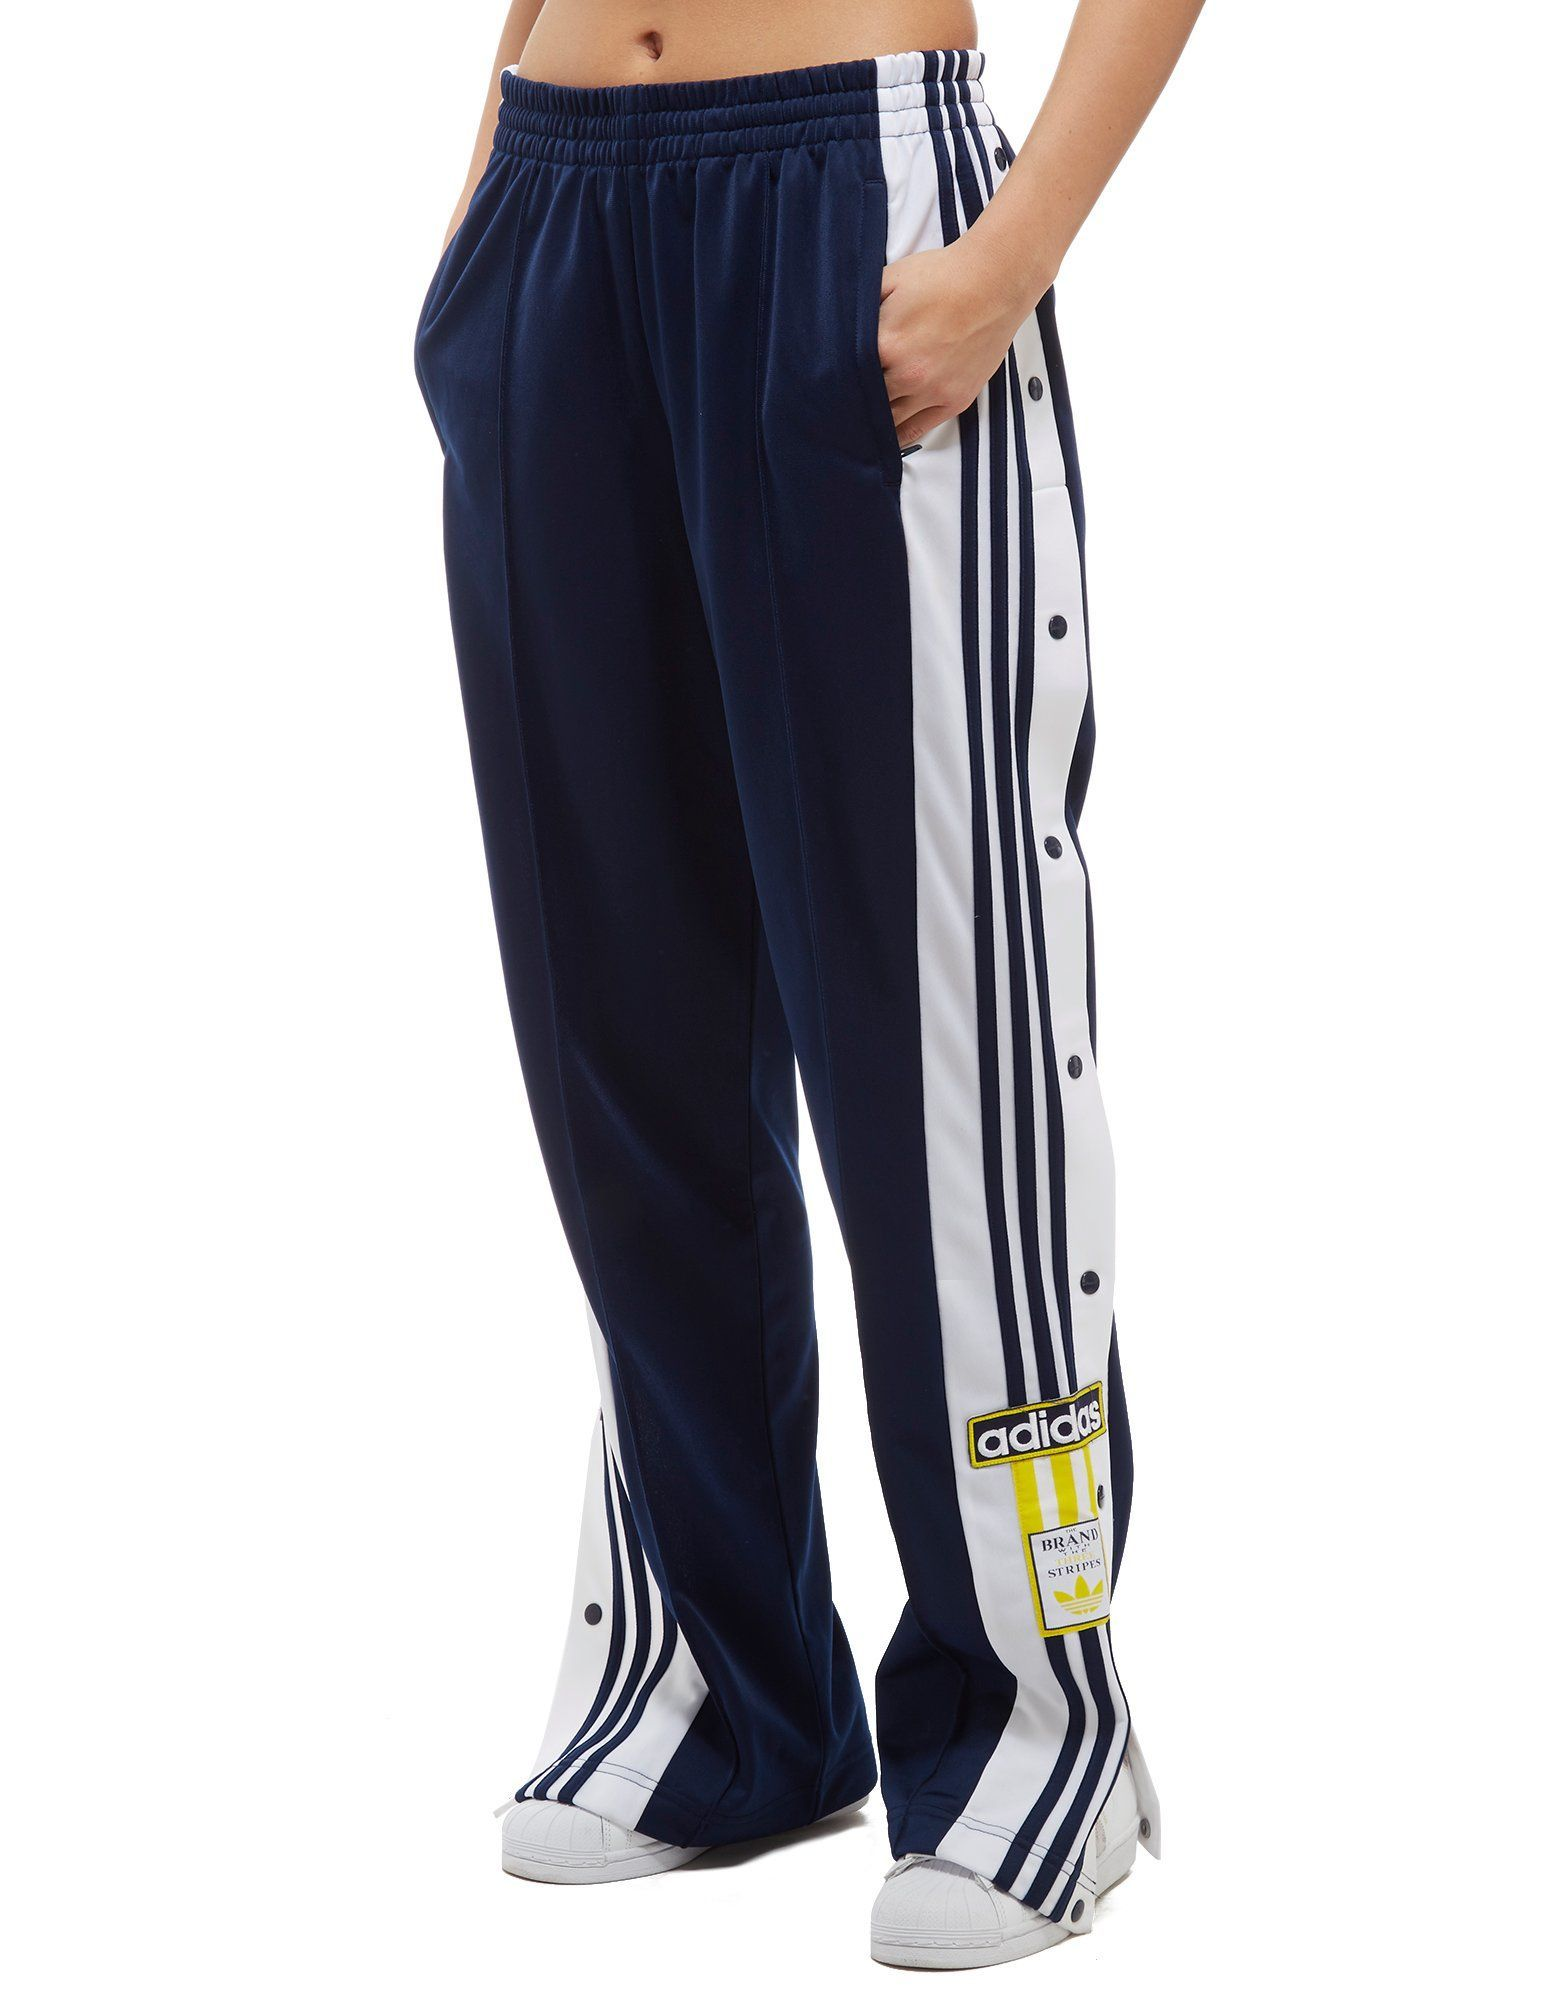 adidas Originals Adibreak Popper Pants - Shop online for adidas Originals  Adibreak Popper Pants with JD Sports 3cebee41b10